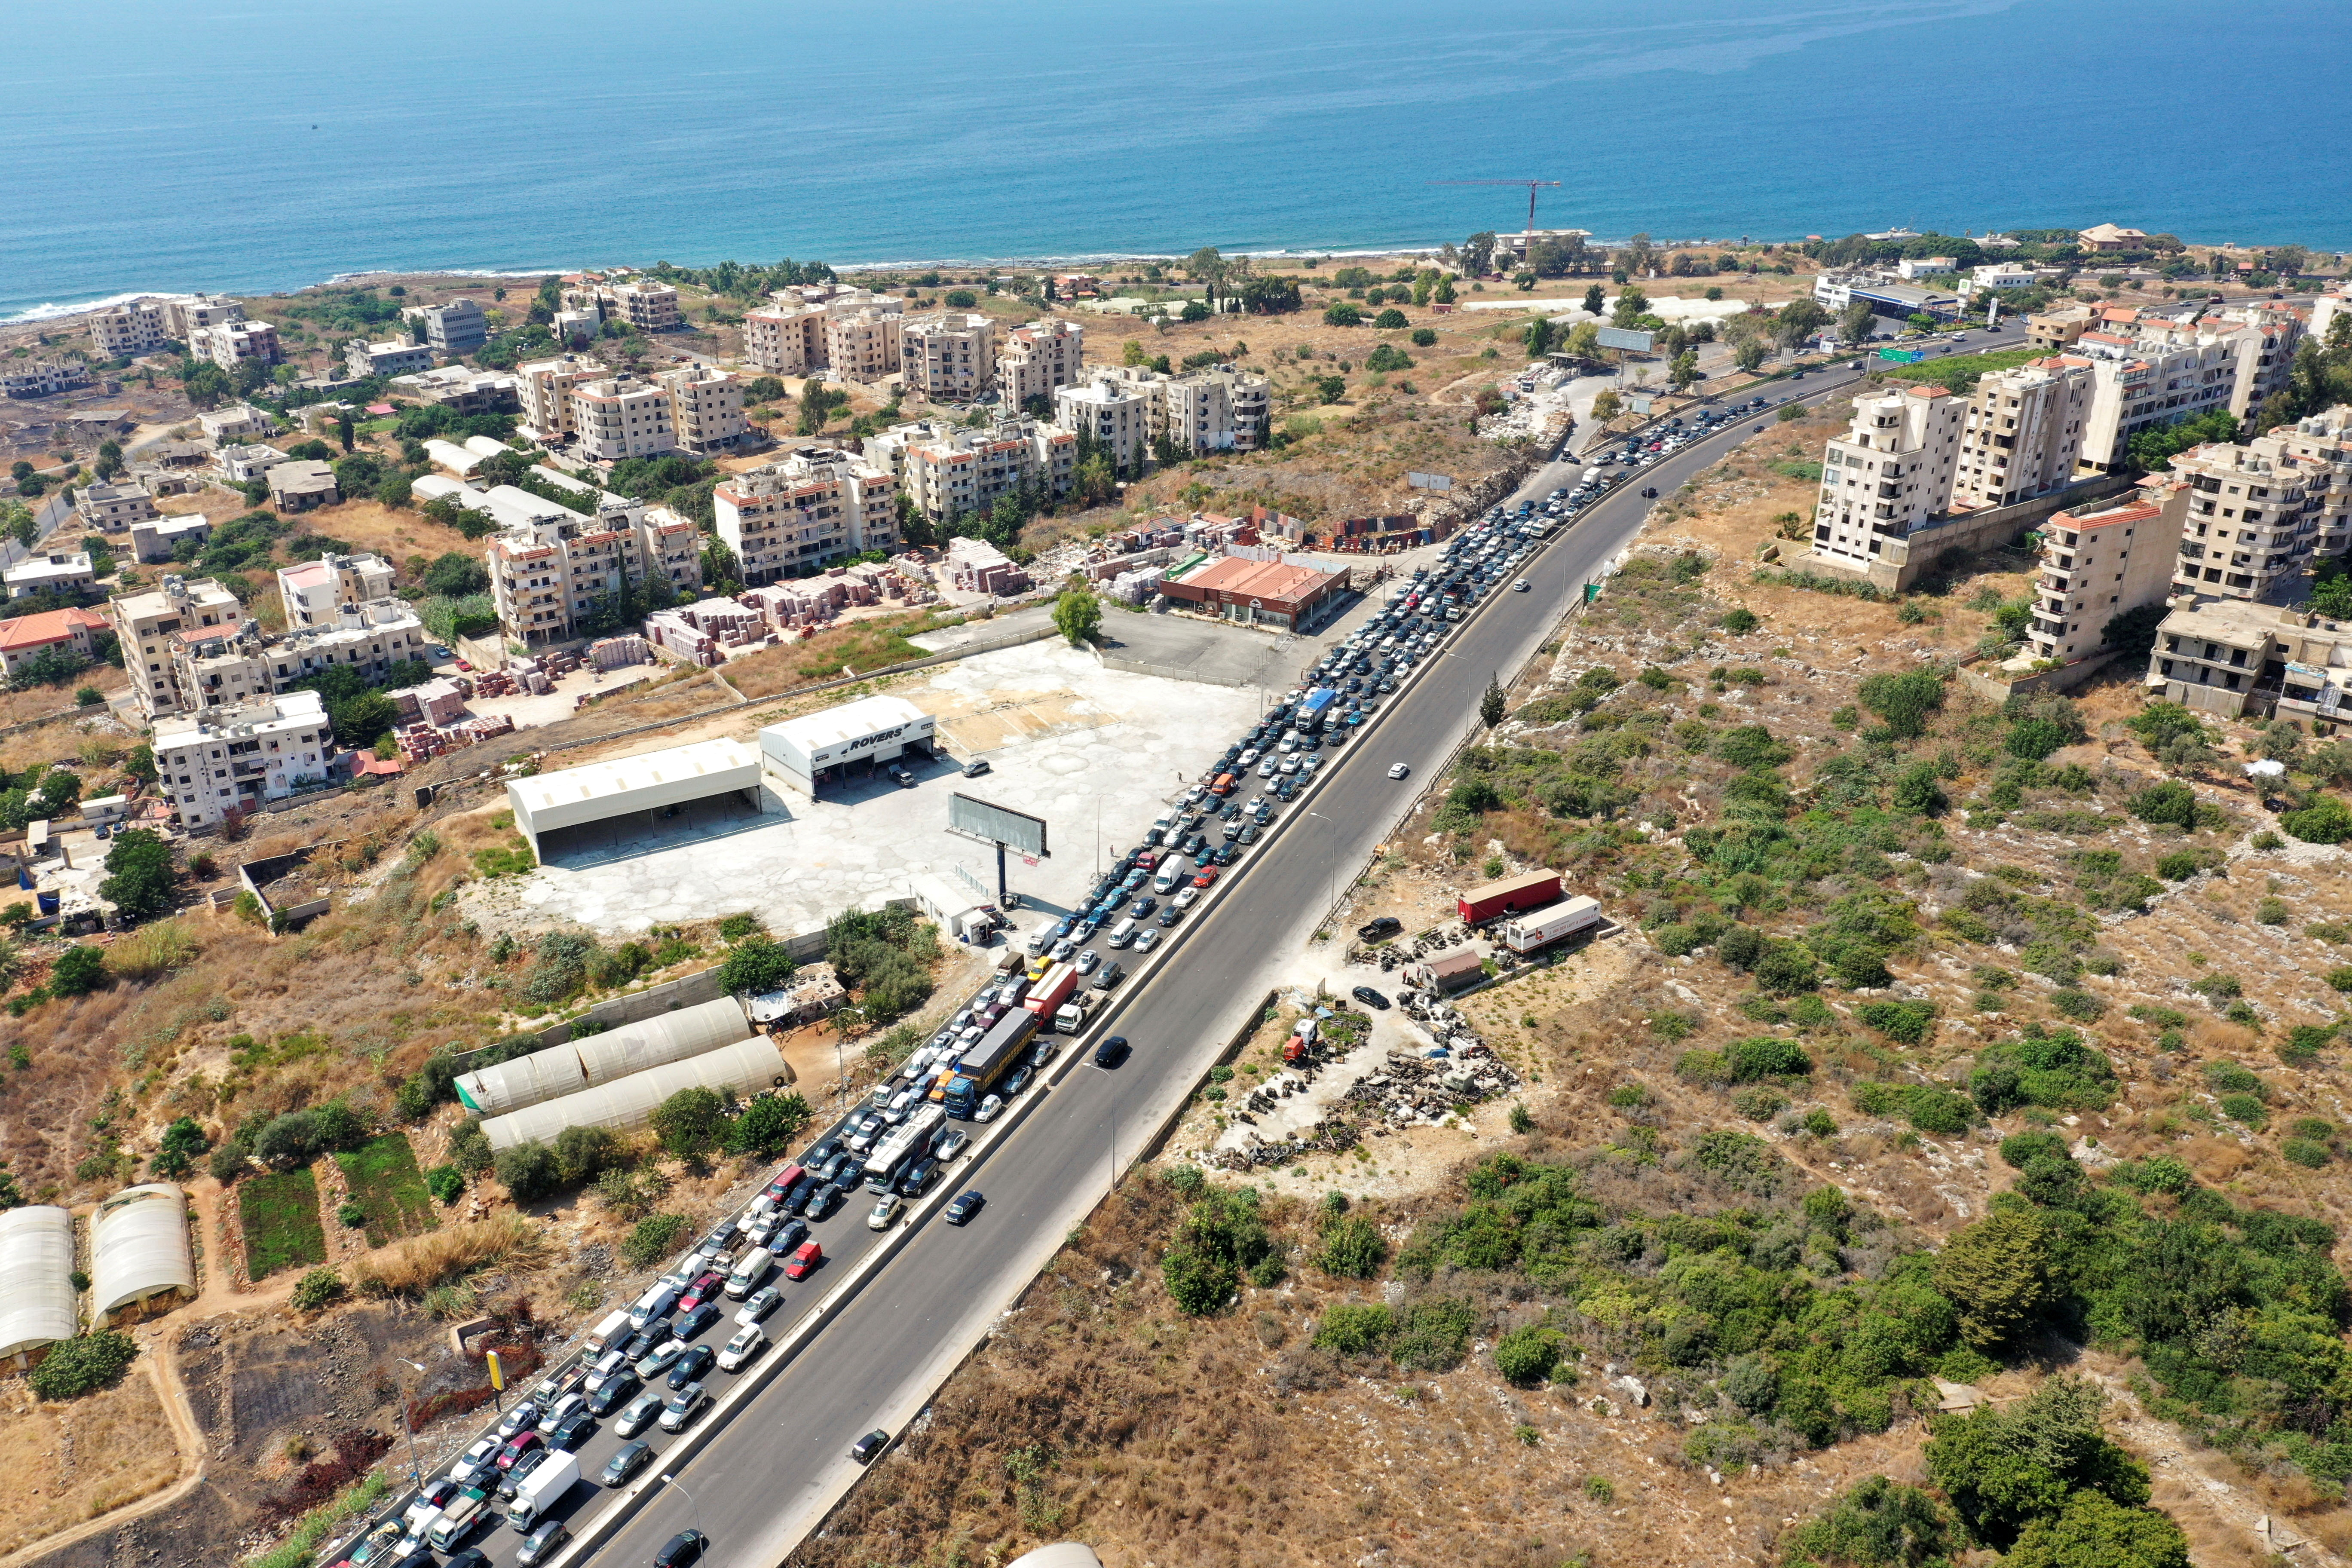 Traffic jam caused by cars lining up for fuel in Damour, Lebanon. REUTERS/Issam Abdallah